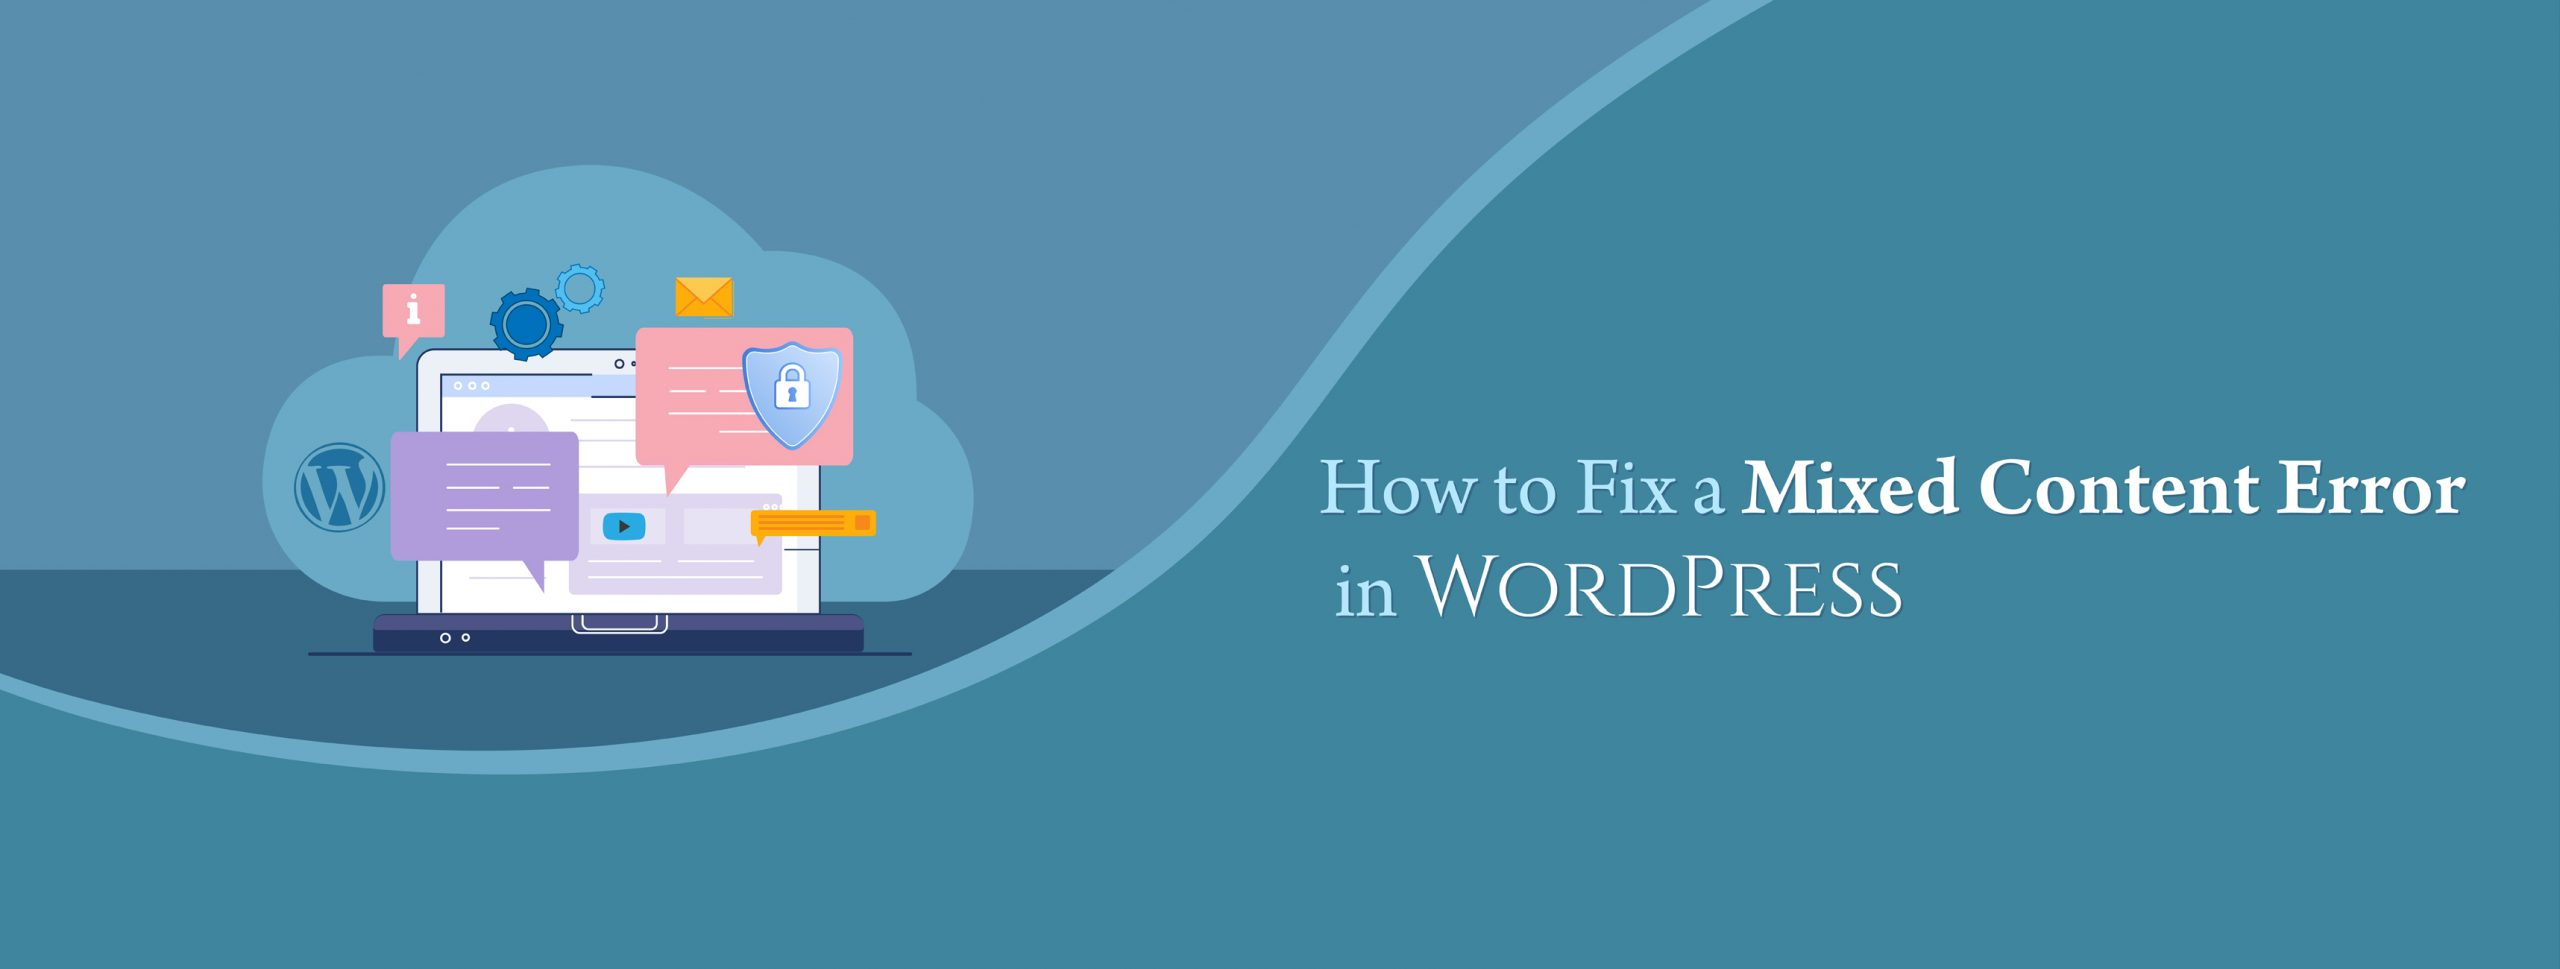 How to Fix a Mixed Content Error in WordPress?